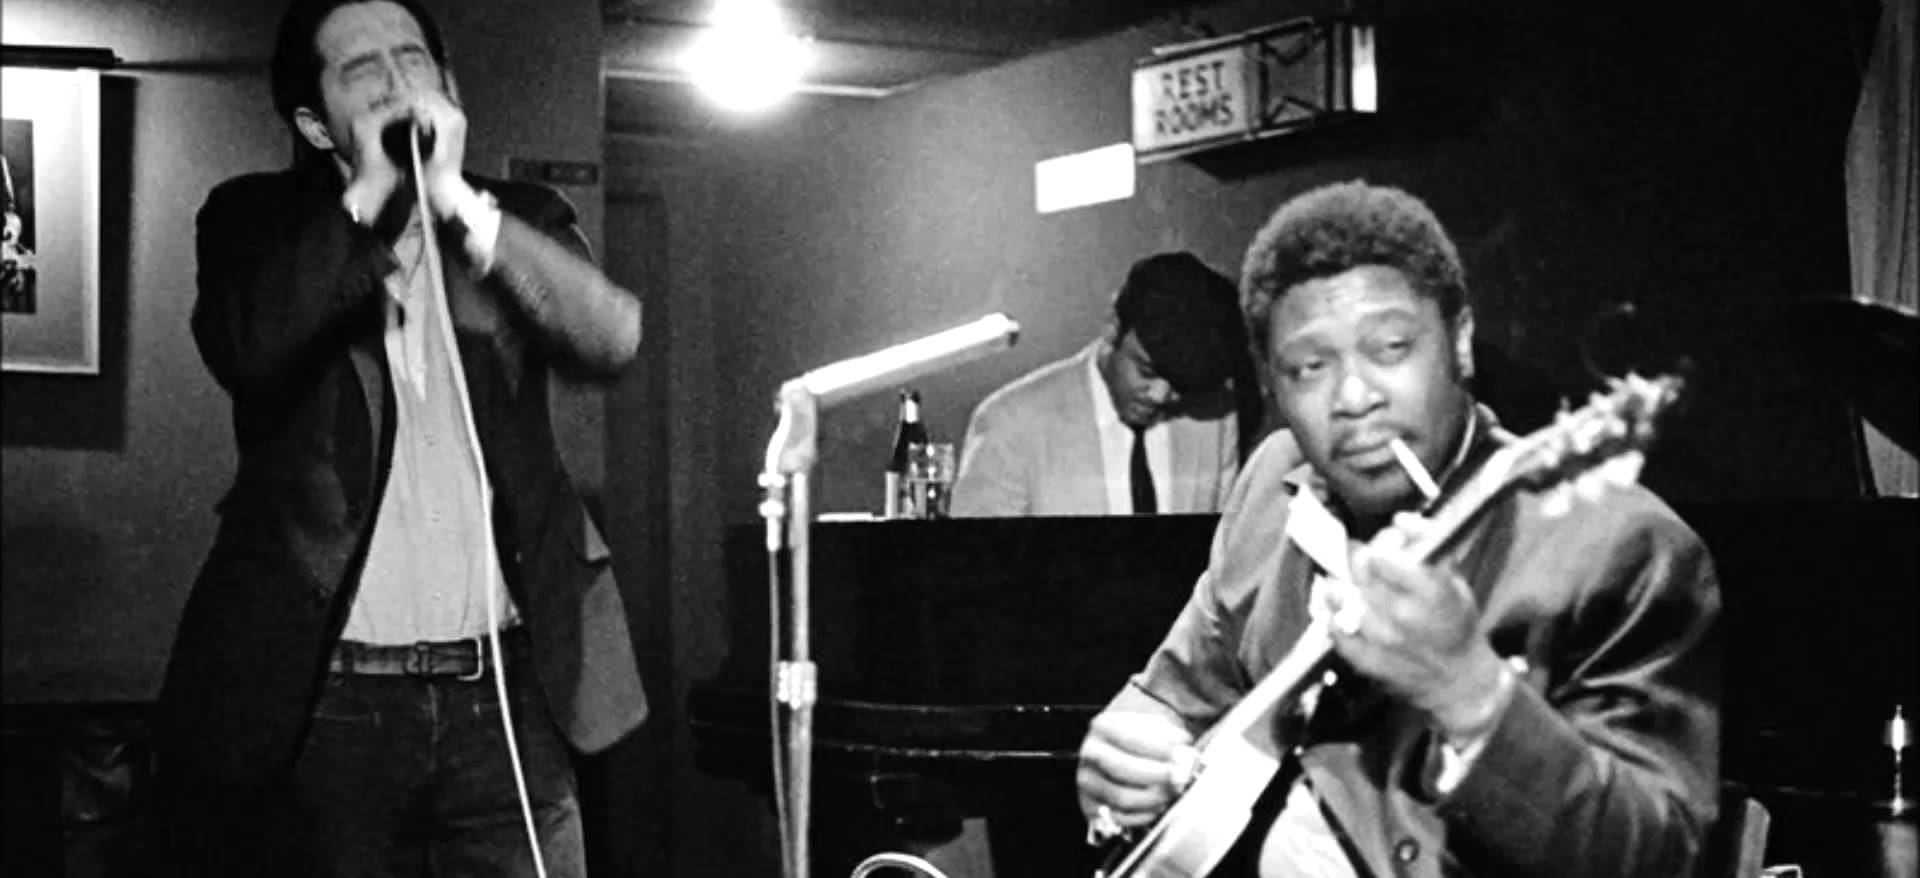 Paul Butterfield jamming with BB King